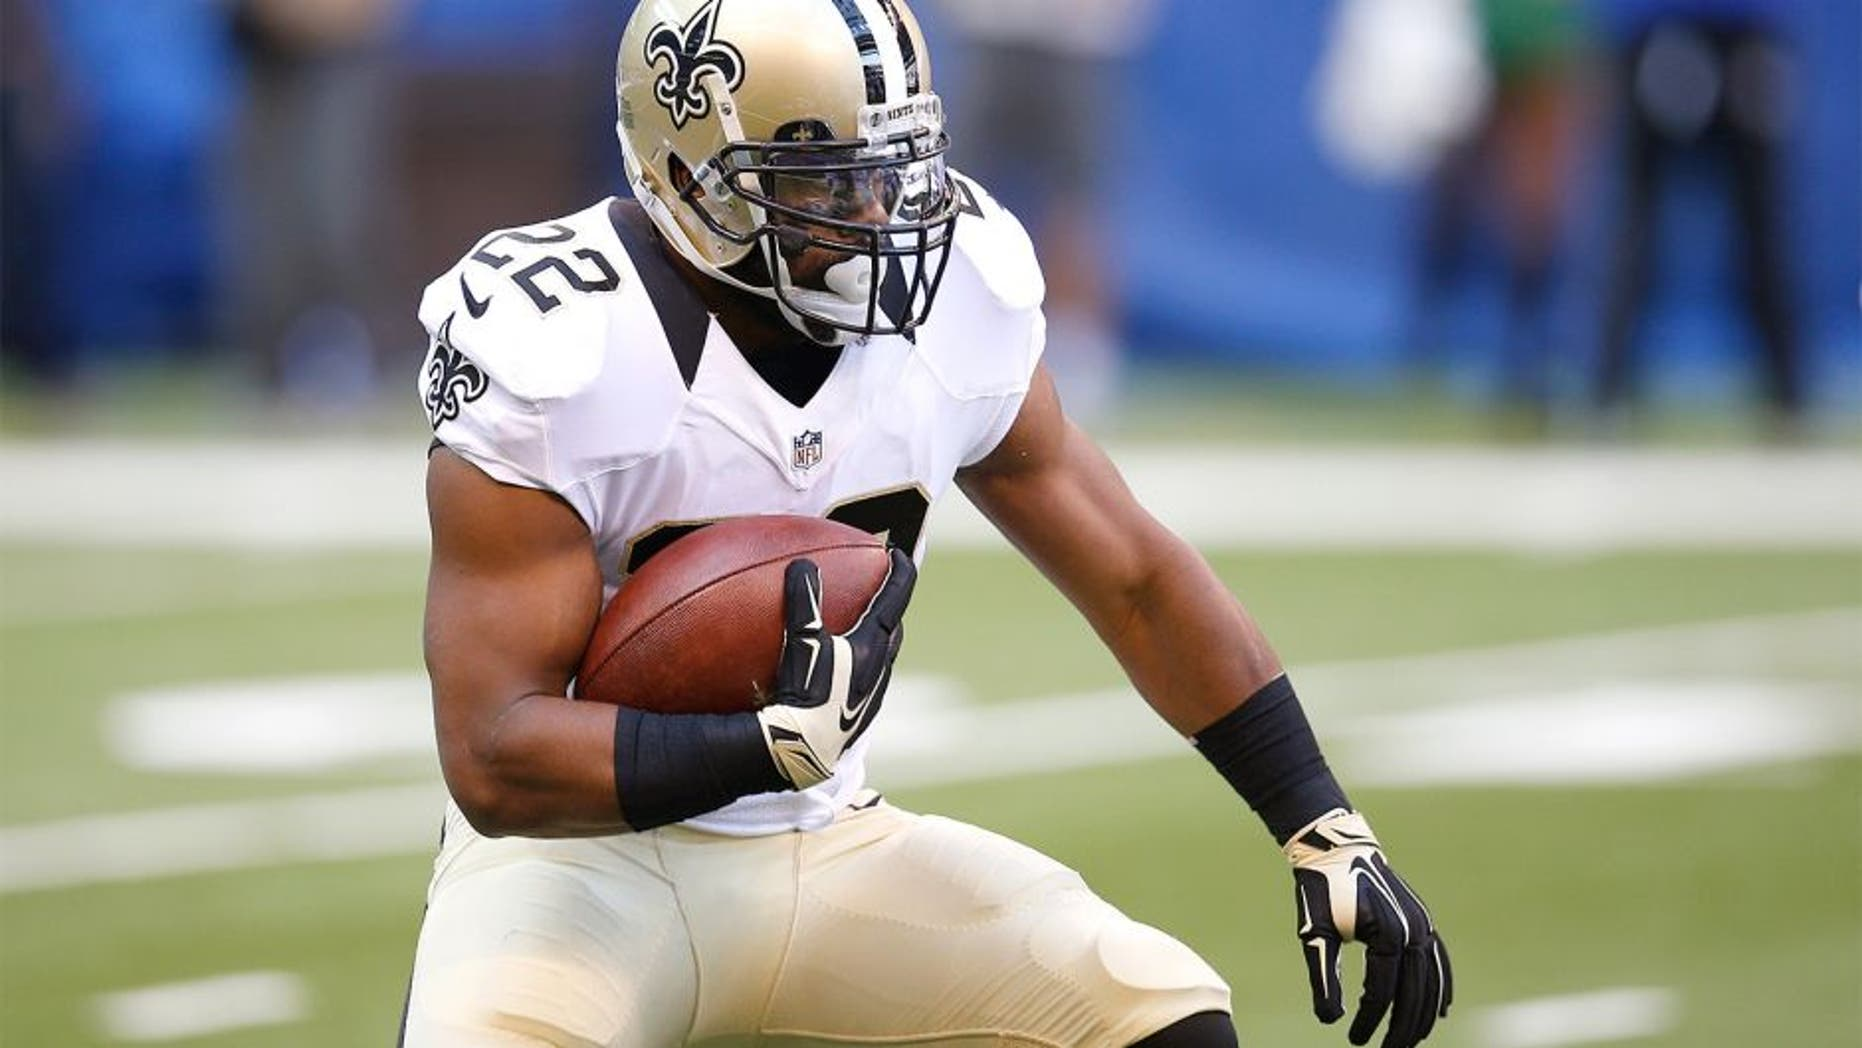 INDIANAPOLIS, IN - OCTOBER 25 Mark Ingram #22 of the New Orleans Saints runs the ball against the Indianapolis Colts in the first half of the game at Lucas Oil Stadium on October 25, 2015 in Indianapolis, Indiana. The Saints defeated the Colts 27-21. (Photo by Joe Robbins/Getty Images)